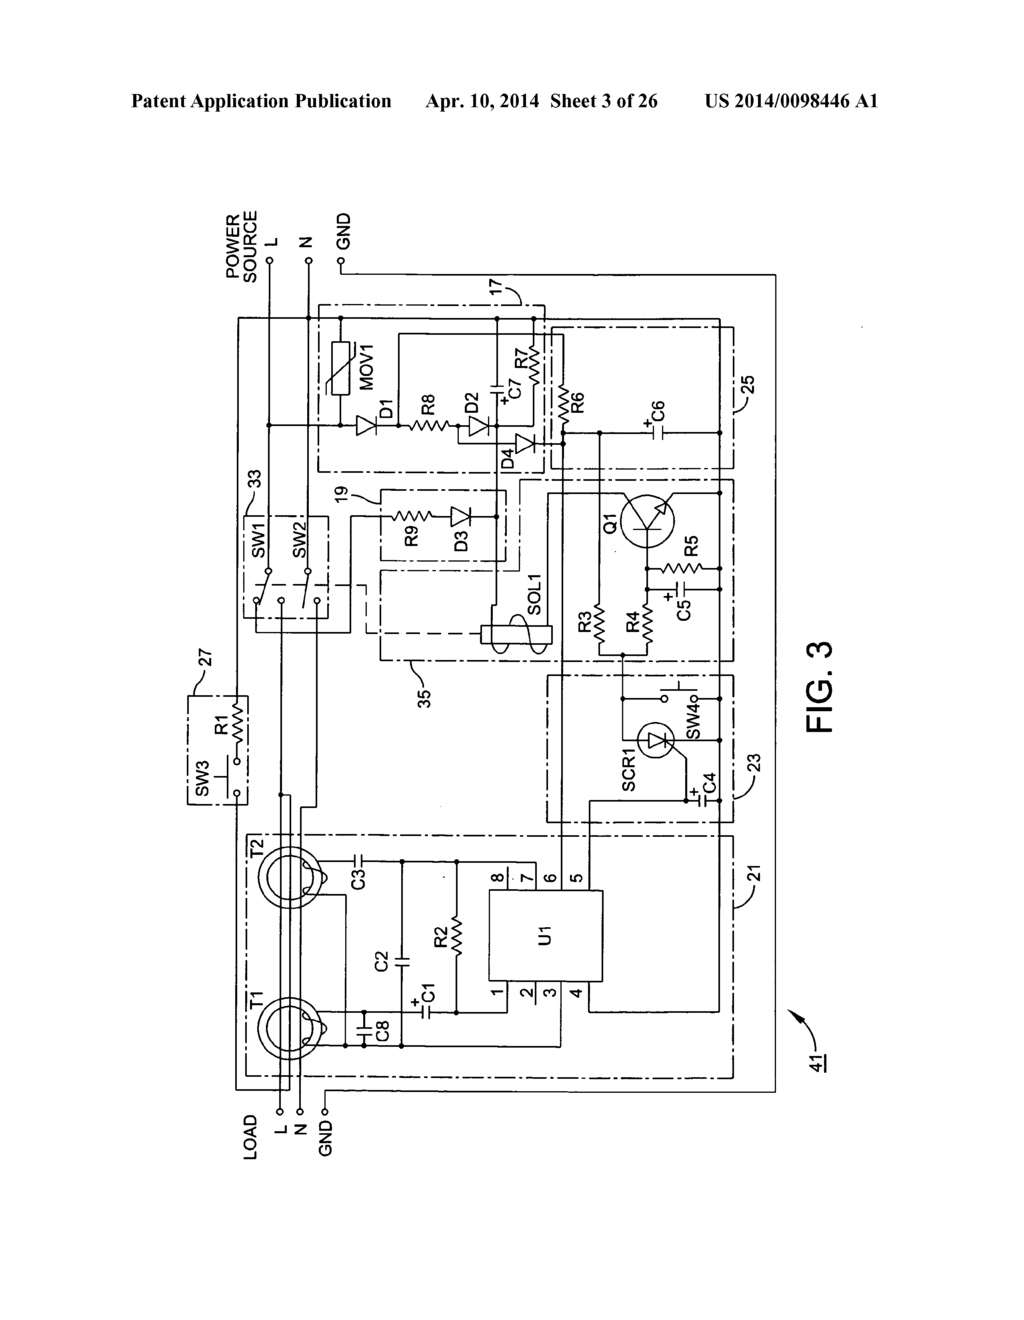 ground fault breaker wiring with Afci Circuit Breaker Schematic Diagram Of An on Make Simple Earth Leakage Circuit as well Afci Circuit Breaker Schematic Diagram Of An in addition 481 GFCI Workshop further Warner Receptacle Wiring Diagram in addition 24juz 3 Wire 220 Volt Wiring Panel House.